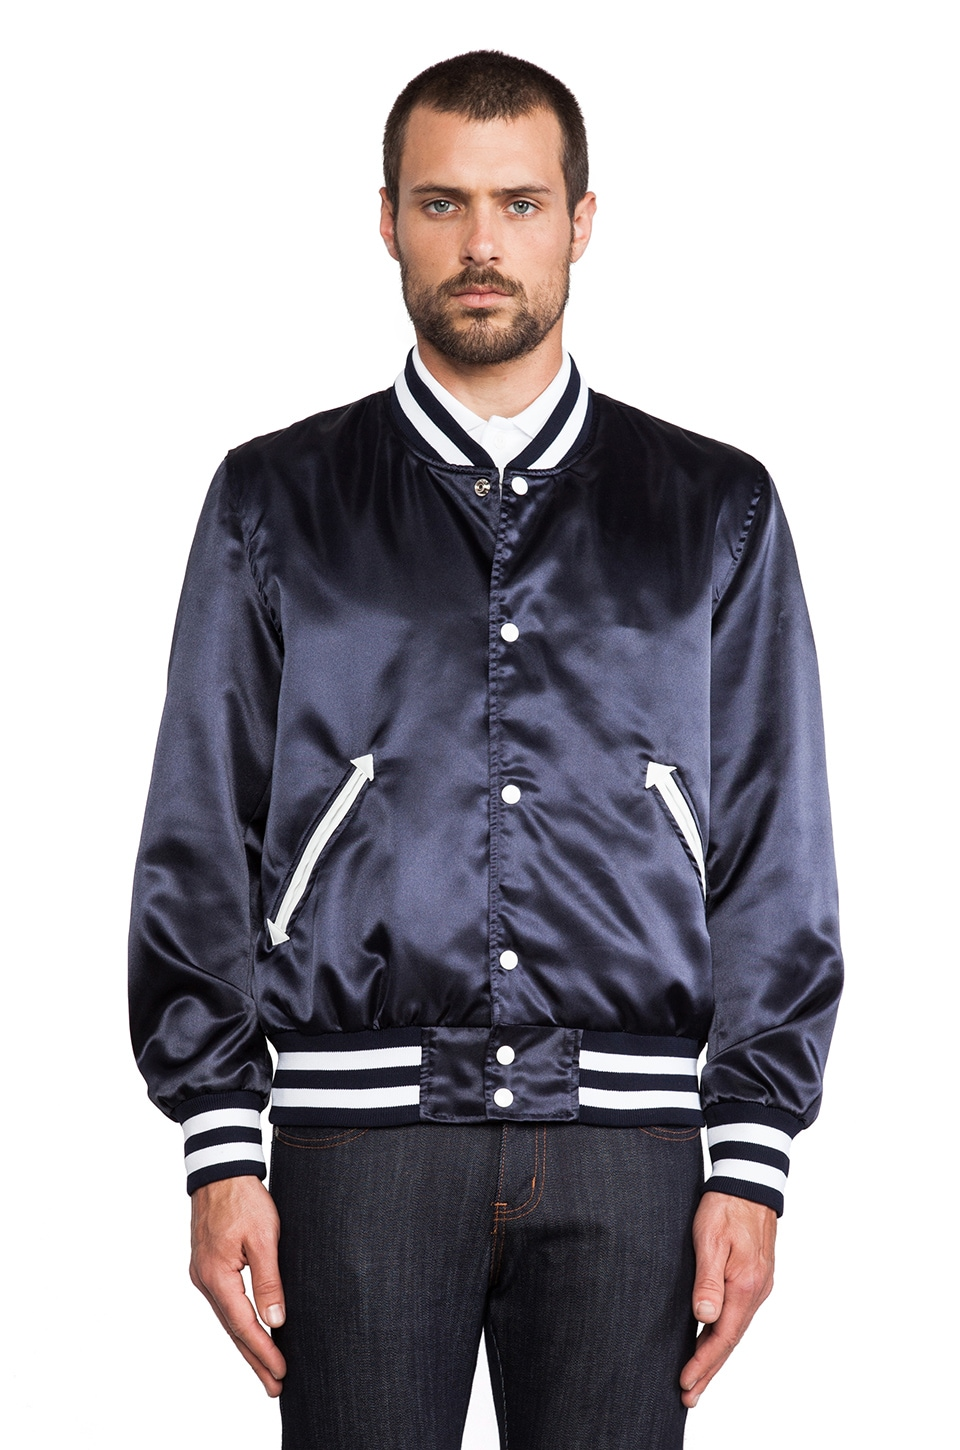 S&H Athletics Bird Varsity Jacket in Navy